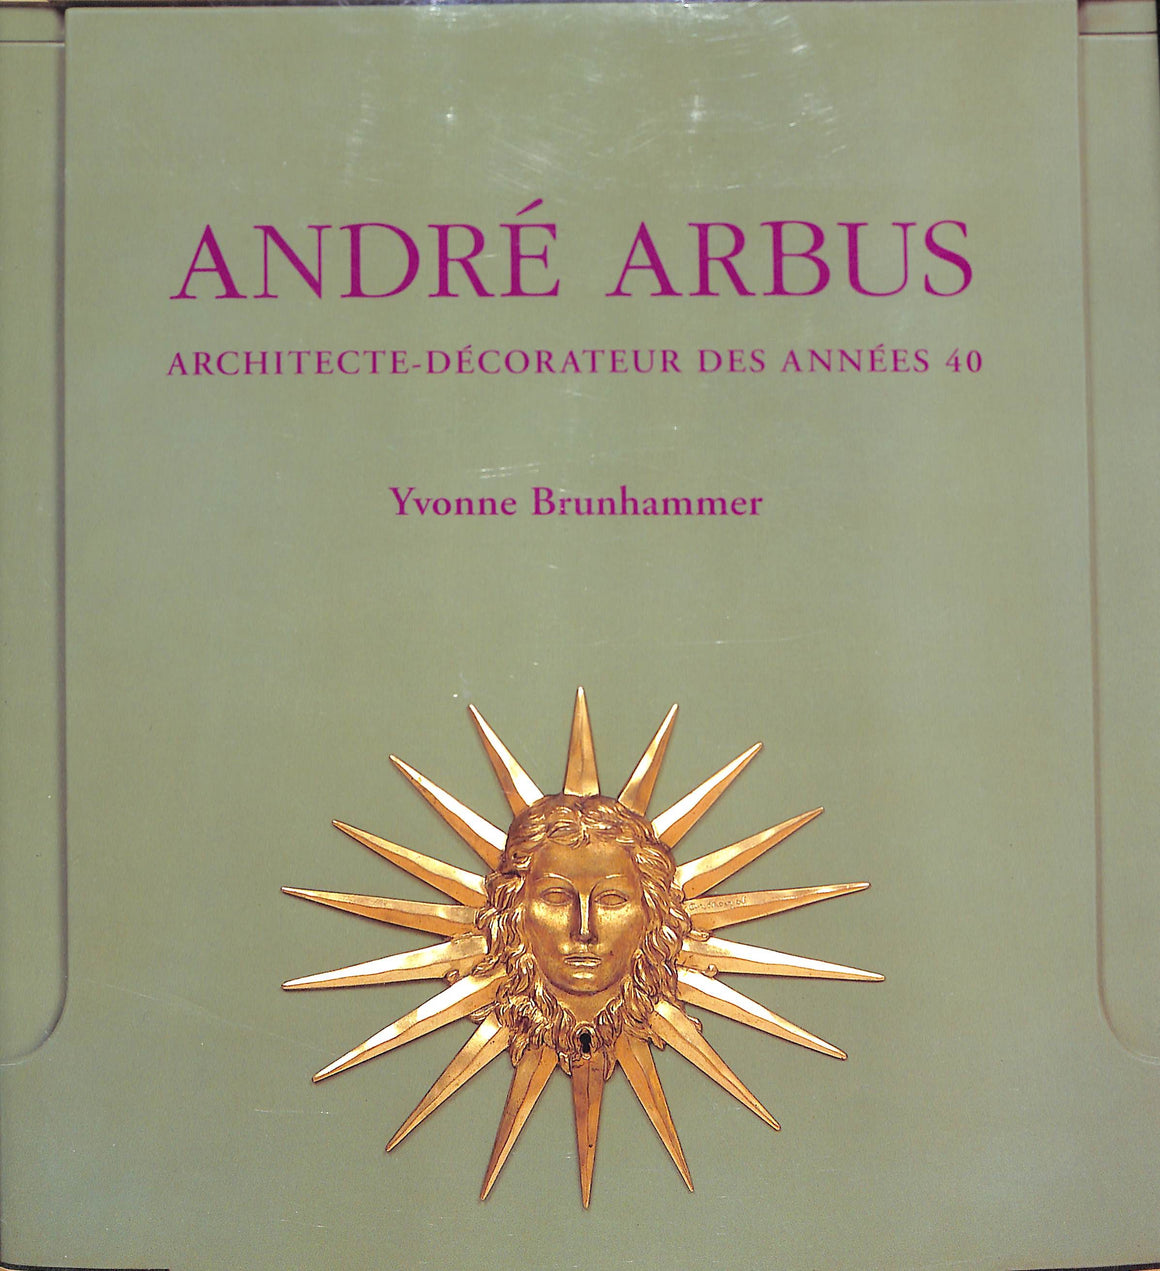 Andre Arbus: Architecte- Decorateur des Annees 40